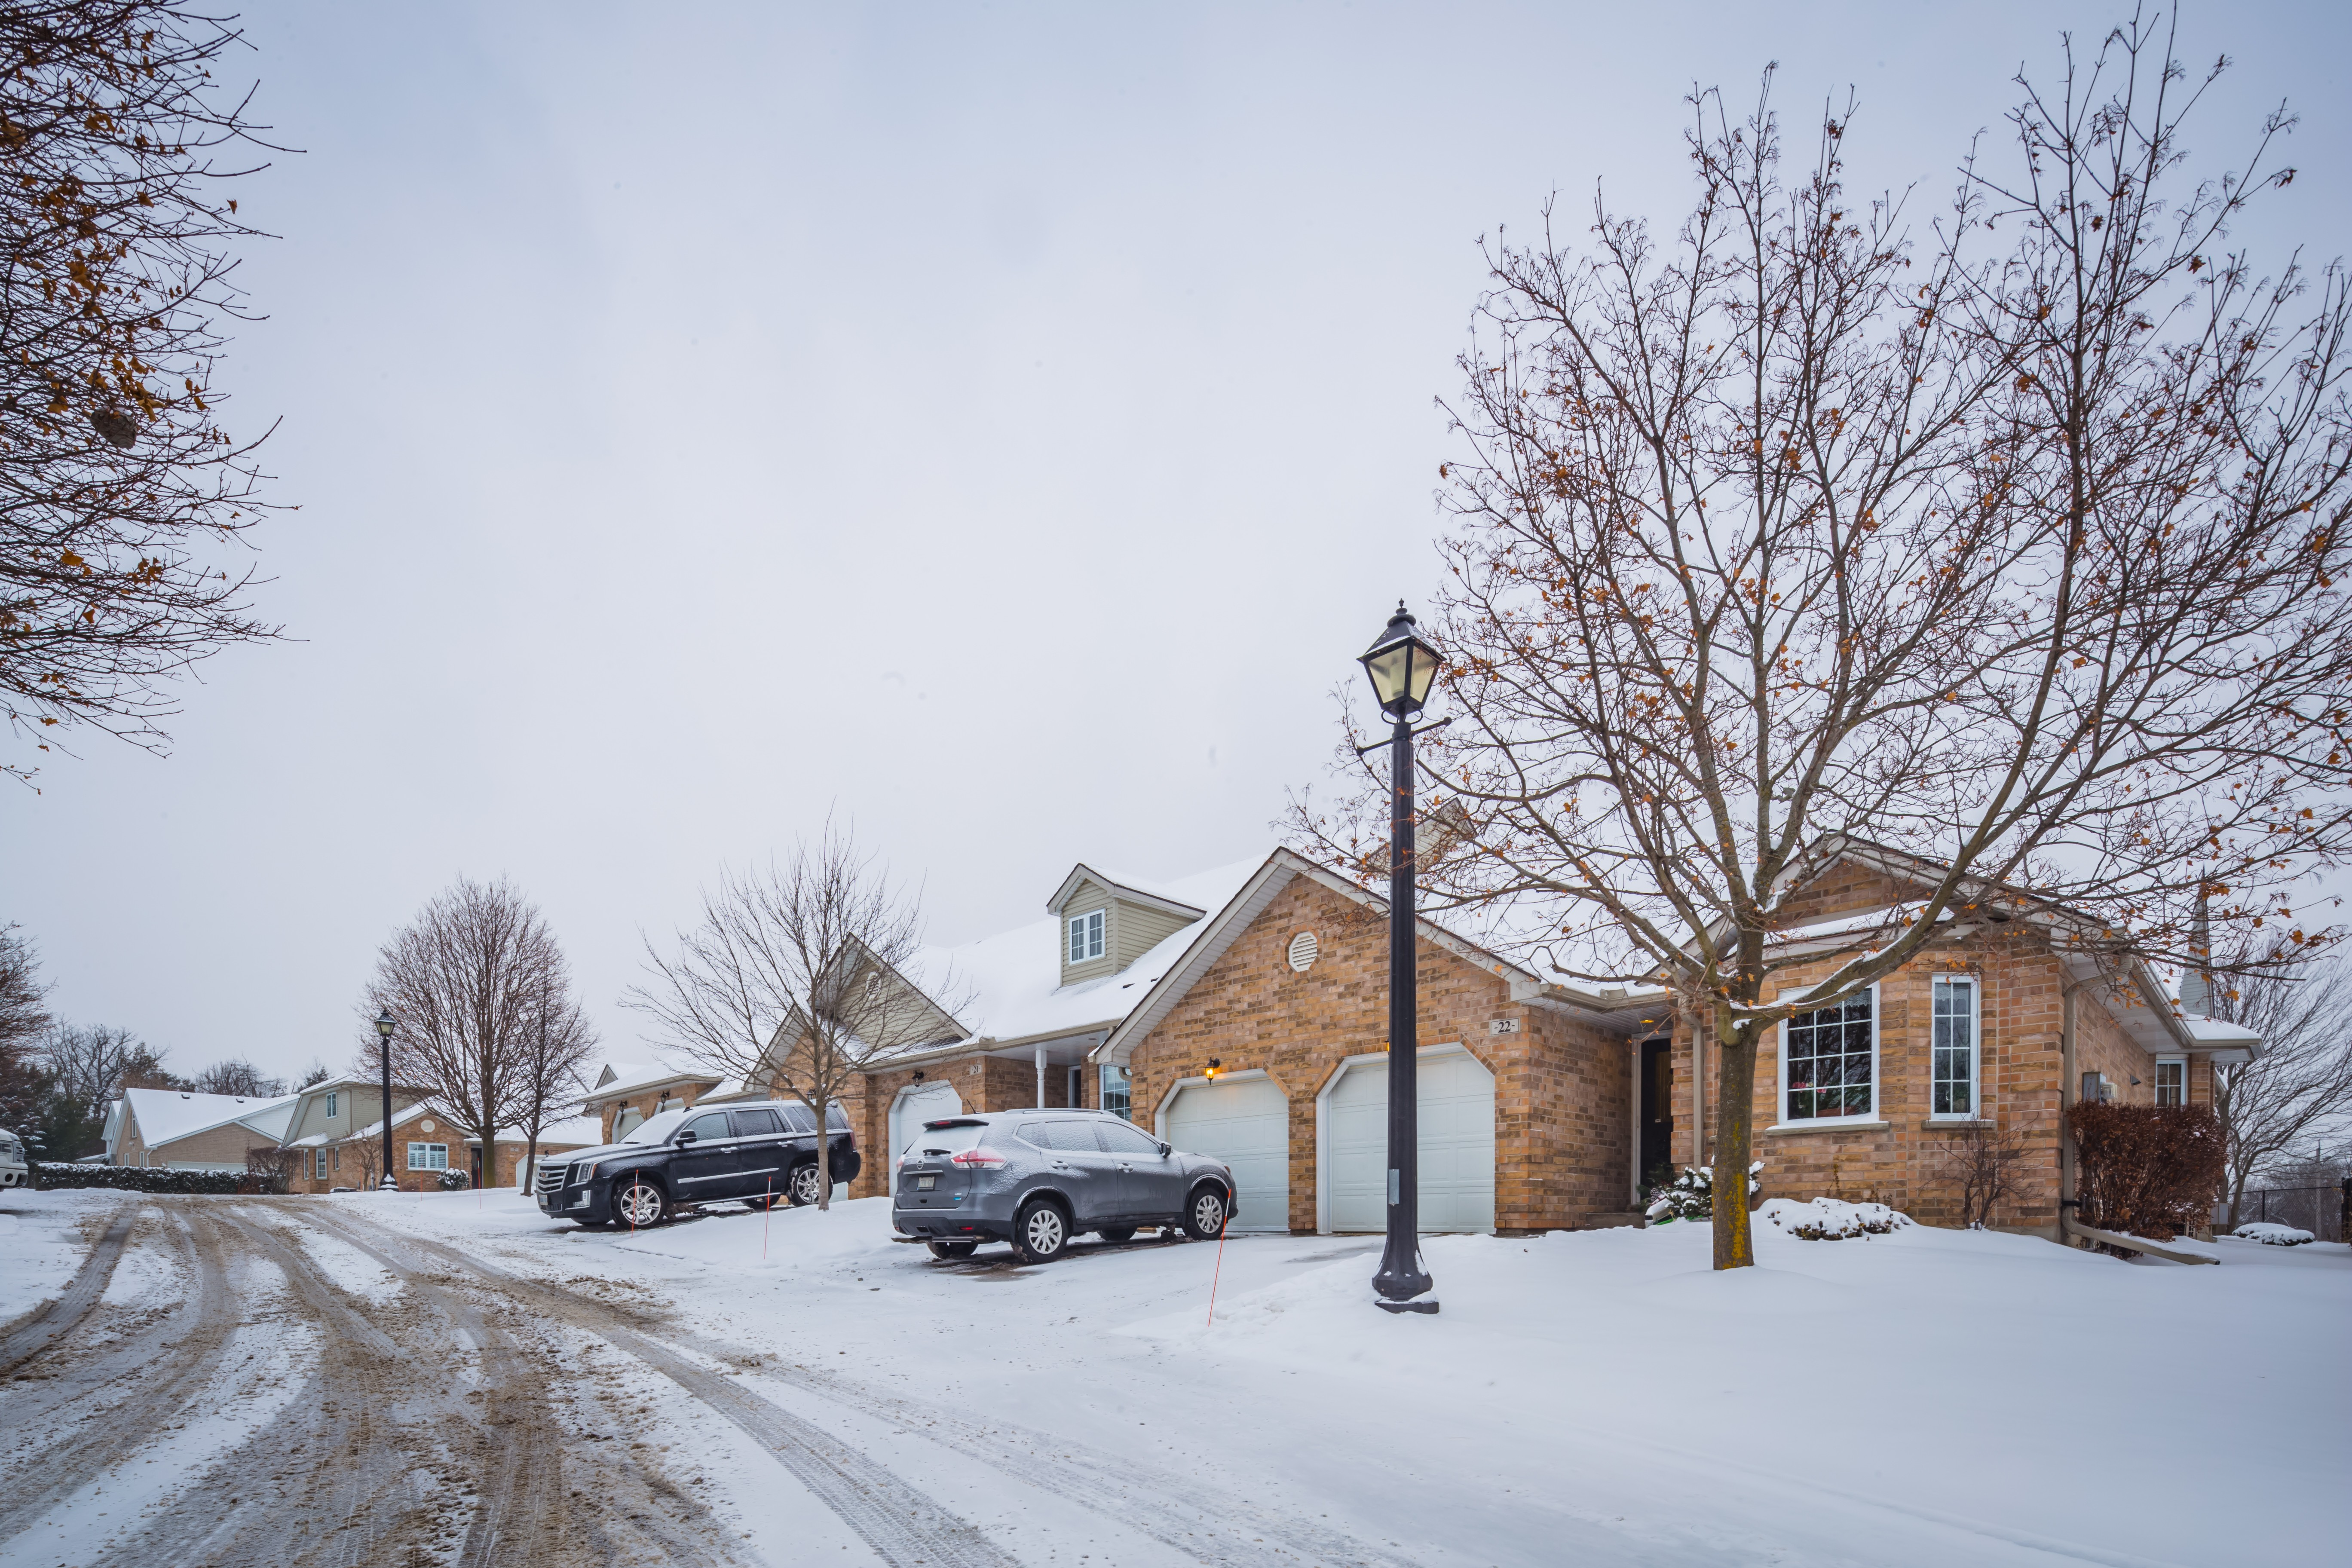 Griffin Place Condominiums at 1198 Swan St, North Dumfries 0